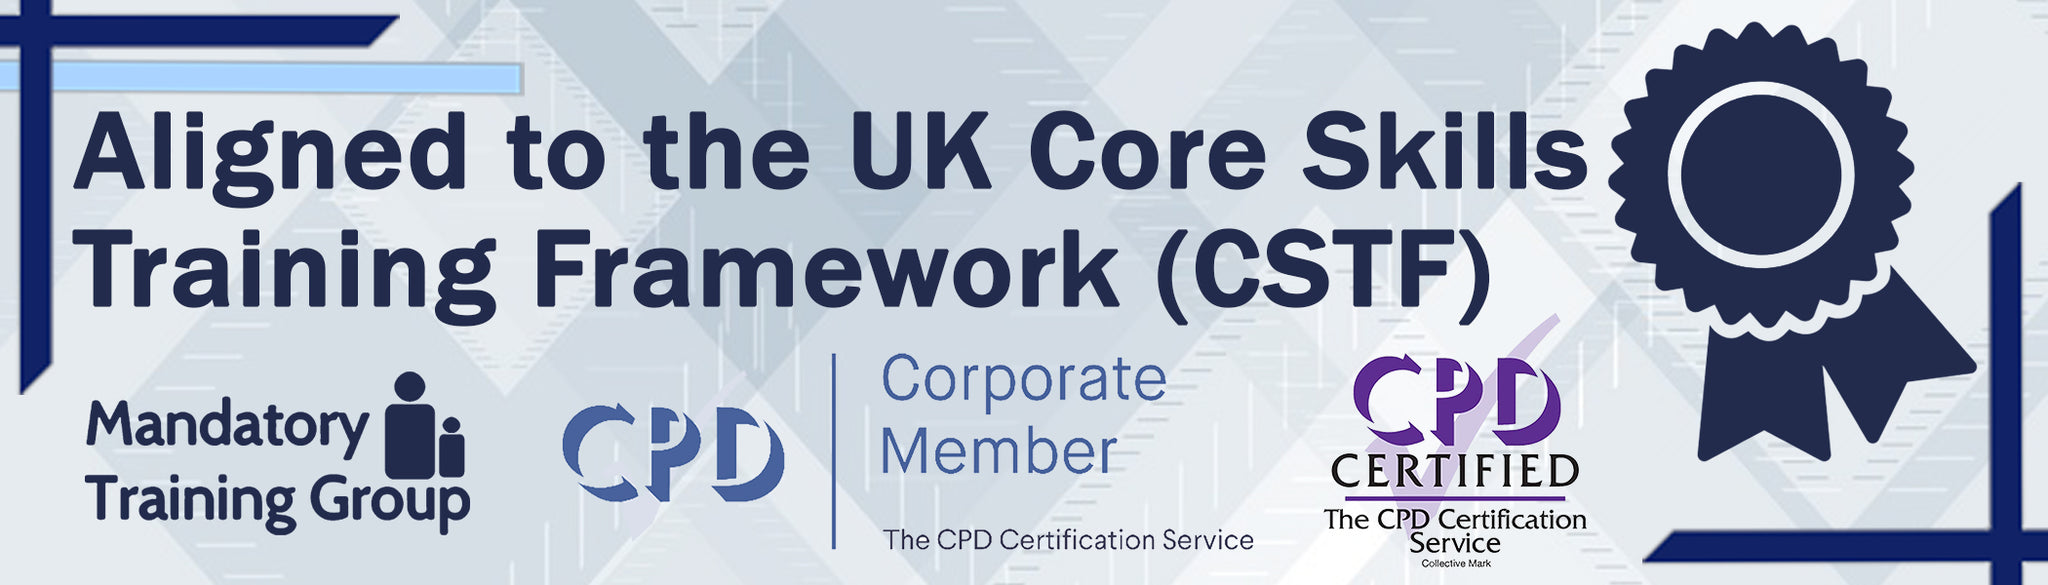 CSTF Resuscitation Adult BLS Level 2 - Care Training Course - The Mandatory Training Group UK -